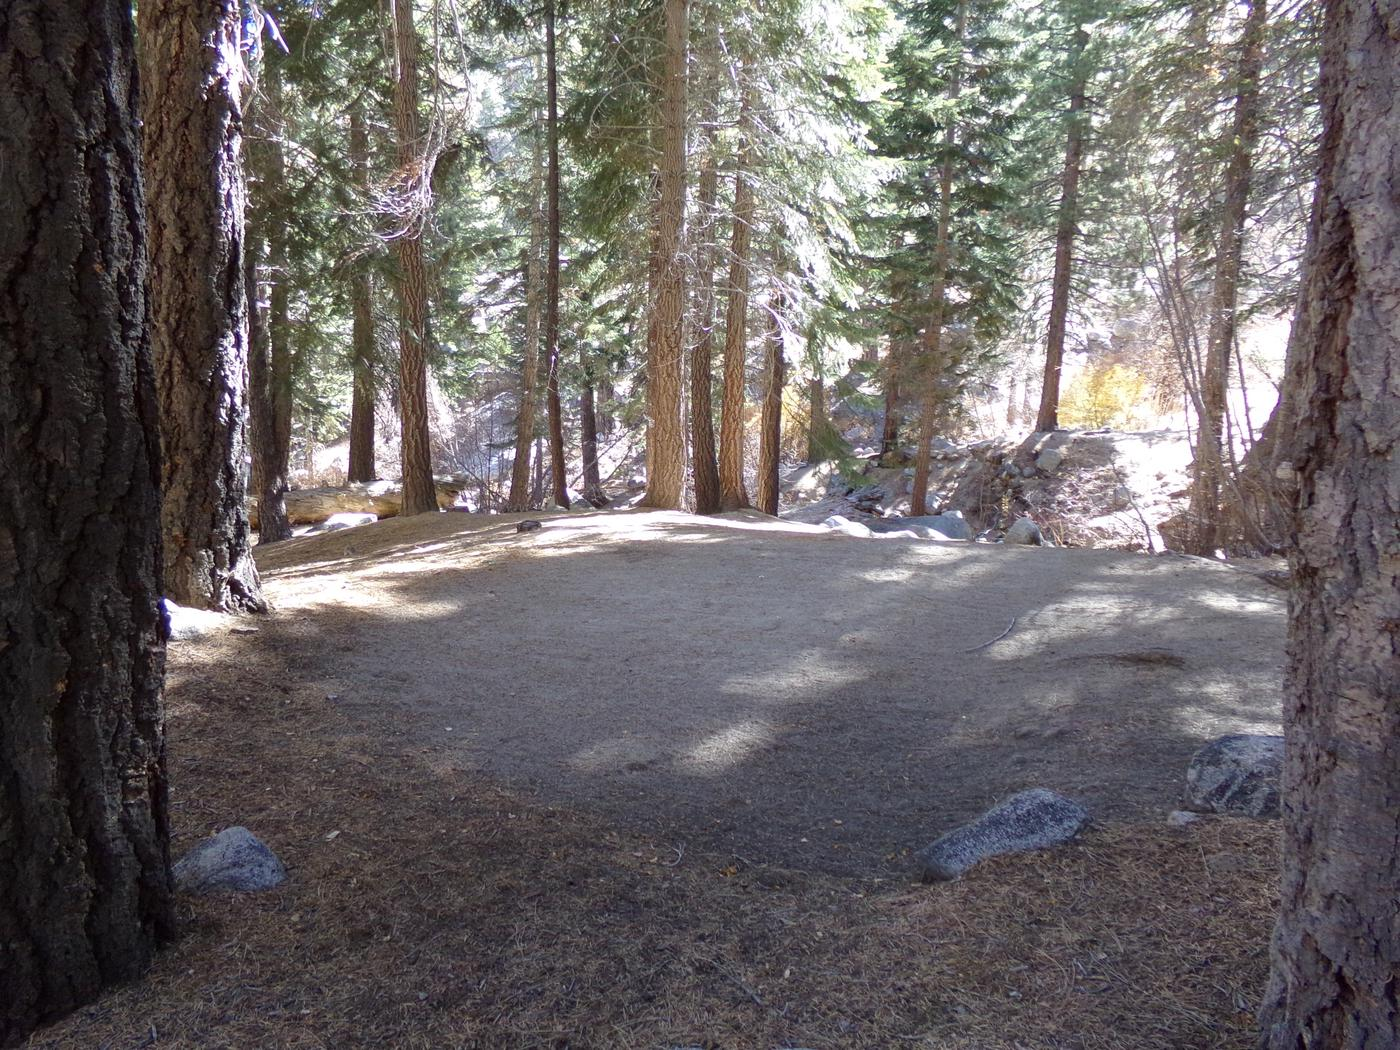 Mt. Whitney Portal Campground site #44 featuring the mountain top setting camping space.